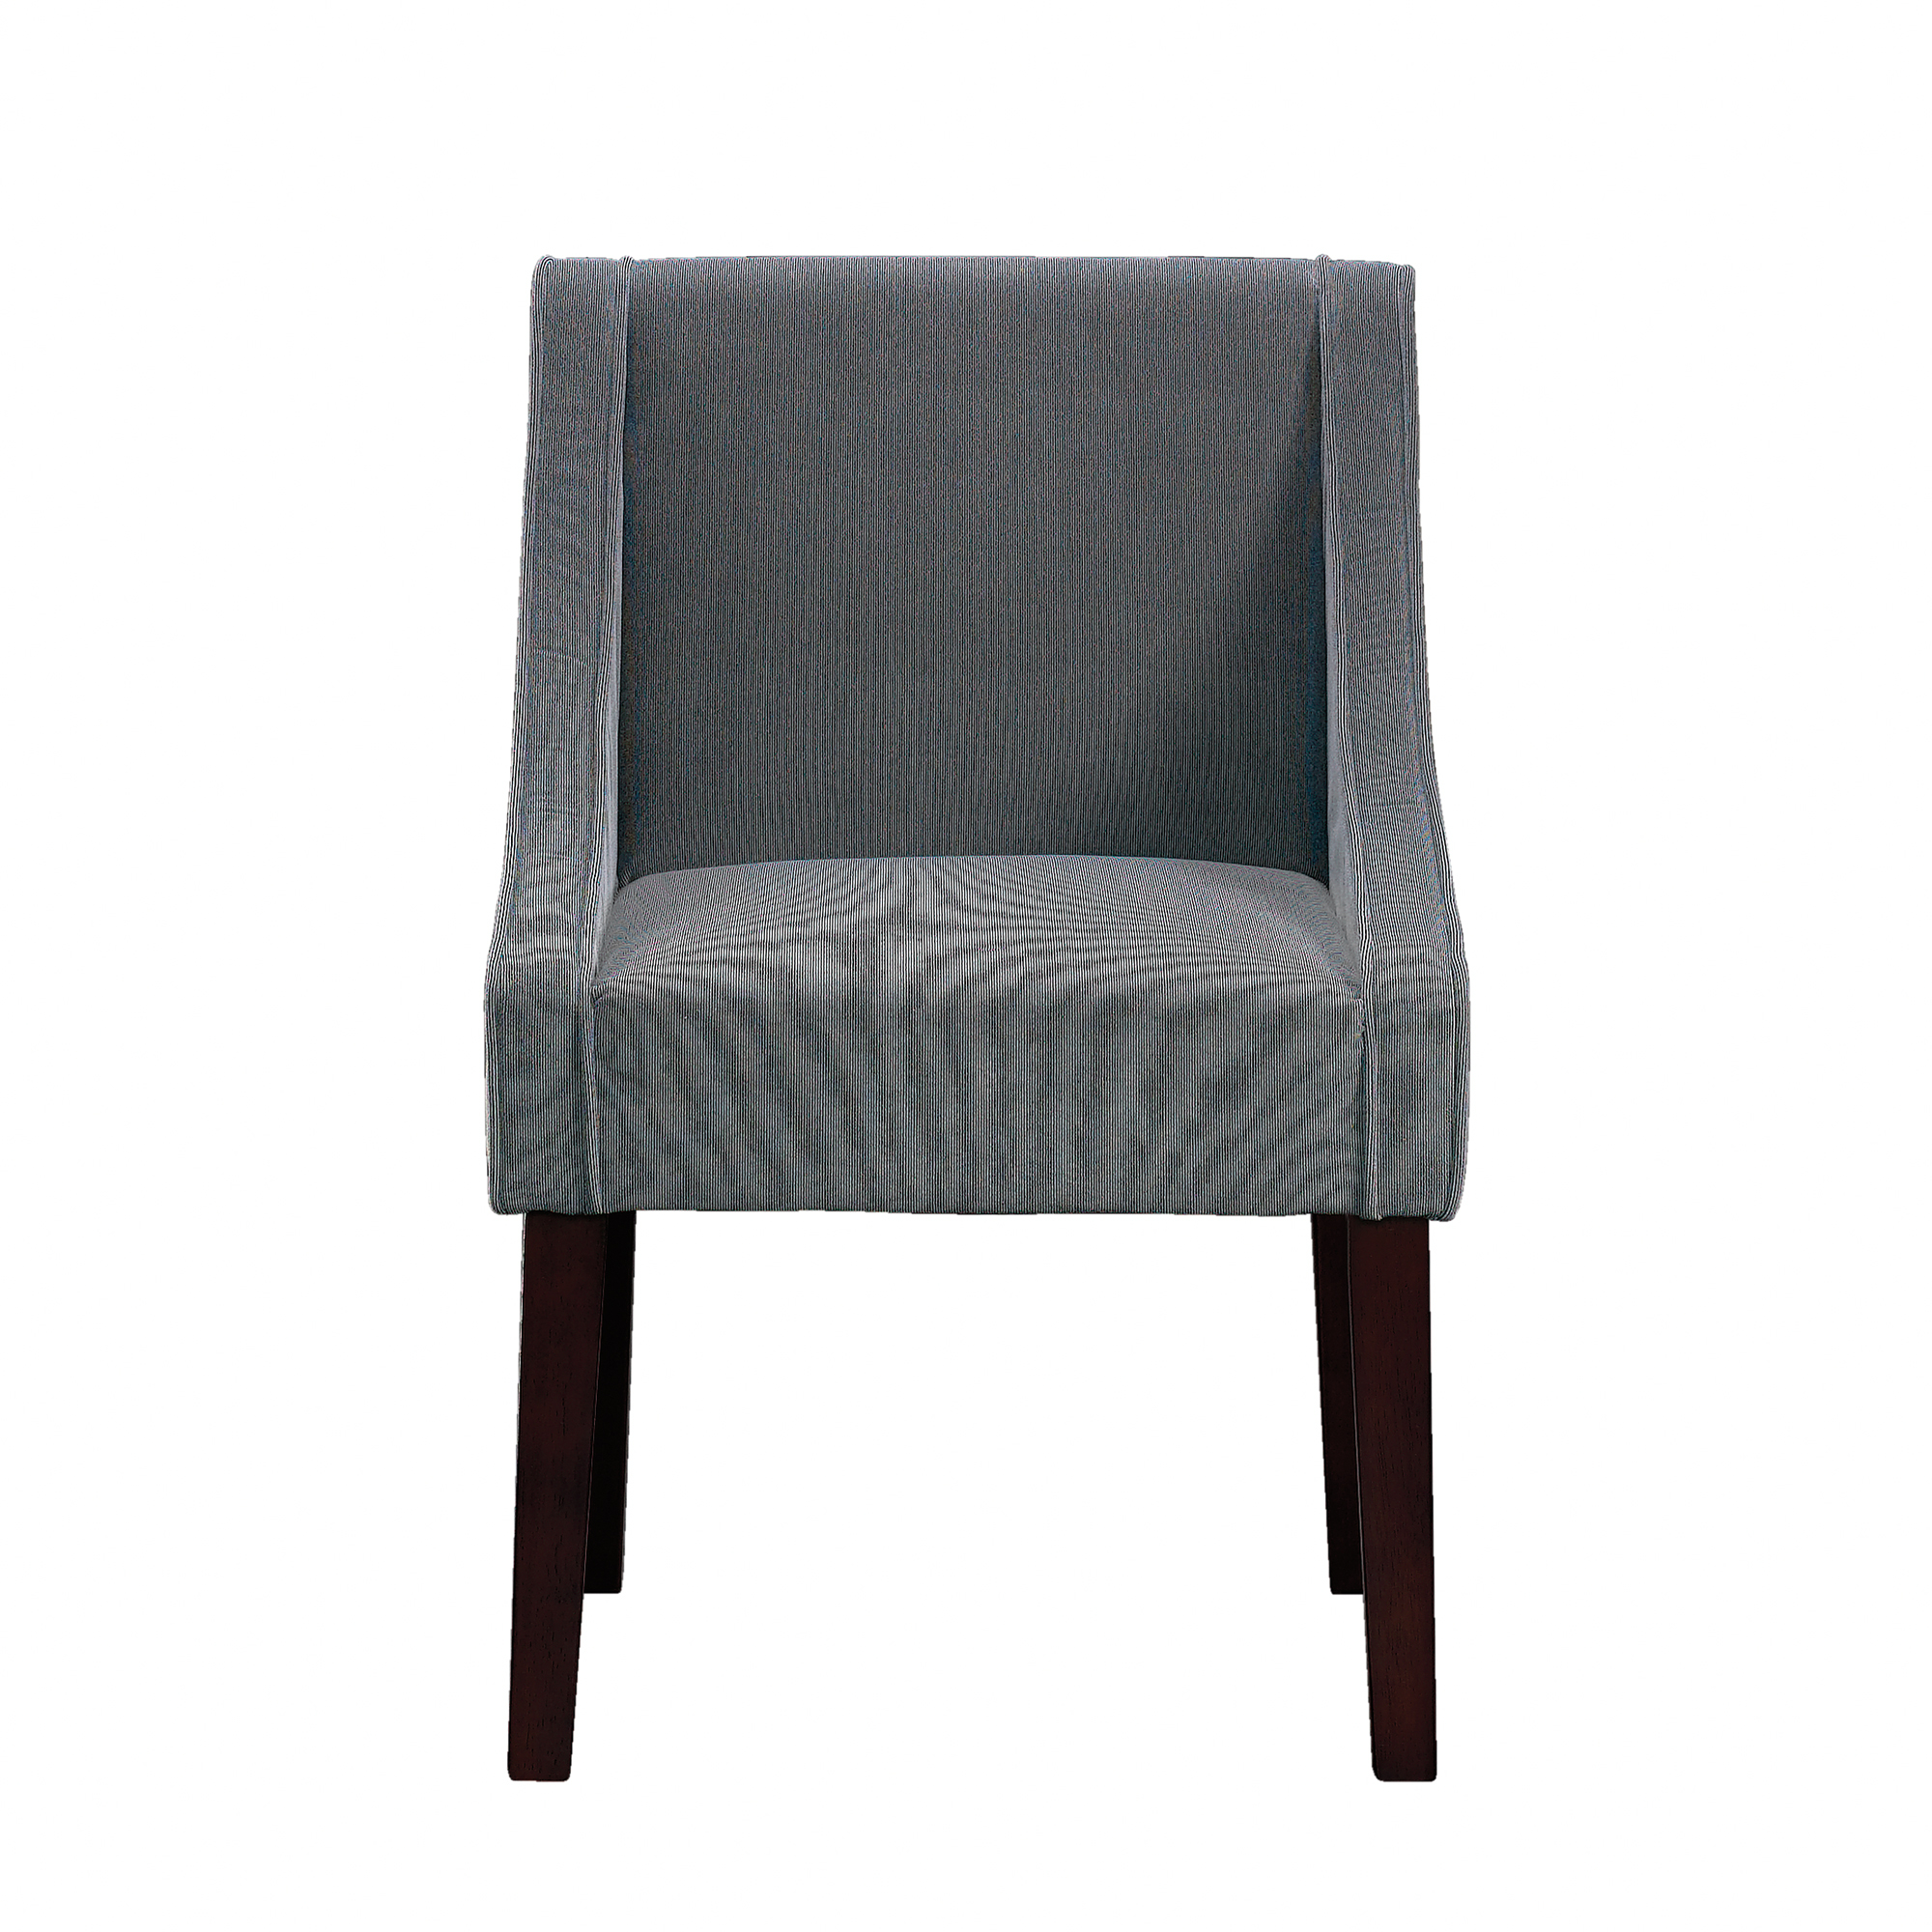 Sears Accent Chairs Sears Accent Chairs Best Accent Chairs And Aquarium